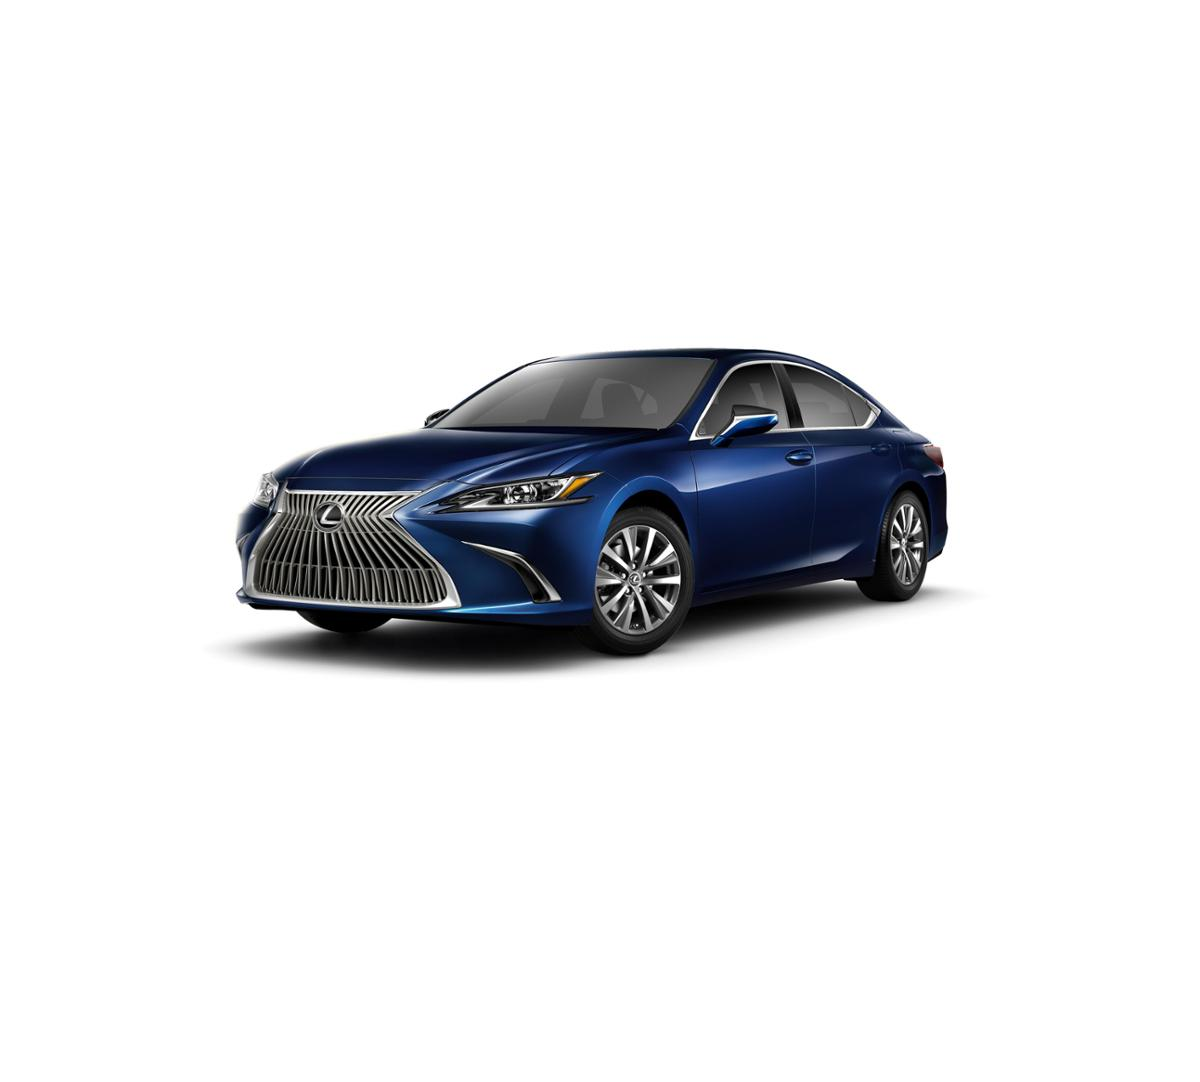 2019 Lexus ES 350 Vehicle Photo in Las Vegas, NV 89146